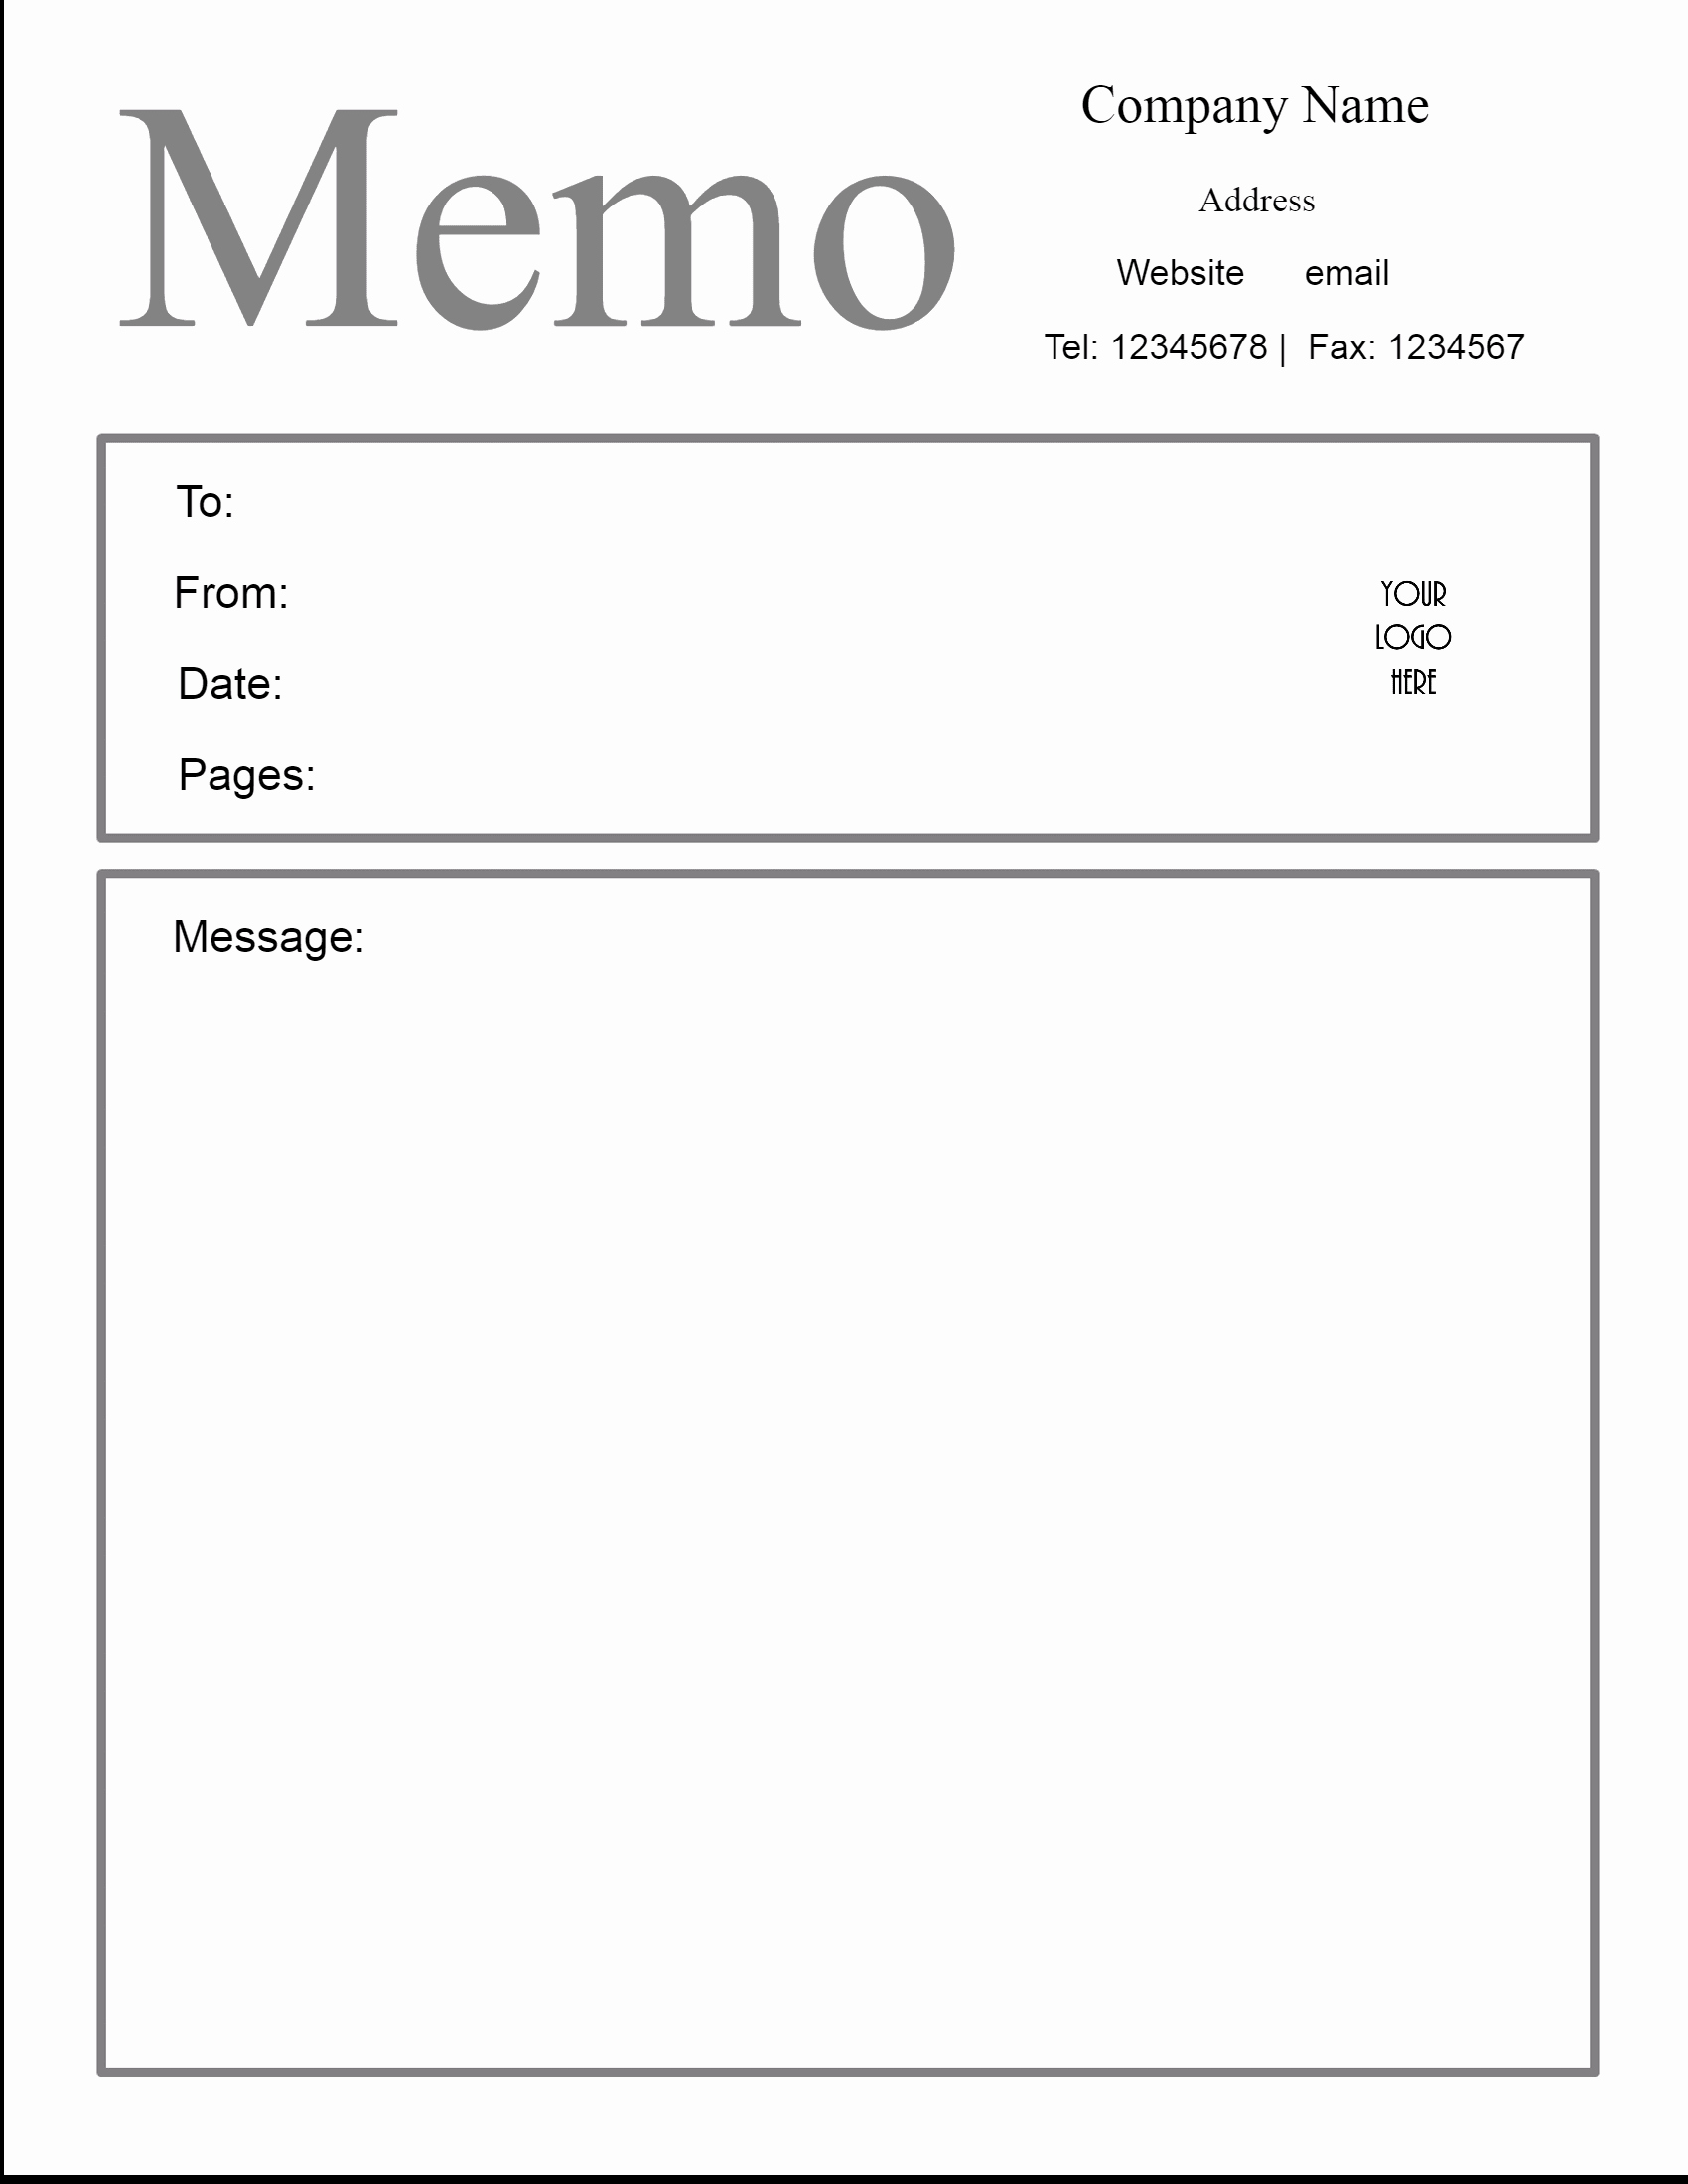 Microsoft Word Memo Template Lovely Free Microsoft Word Memo Template